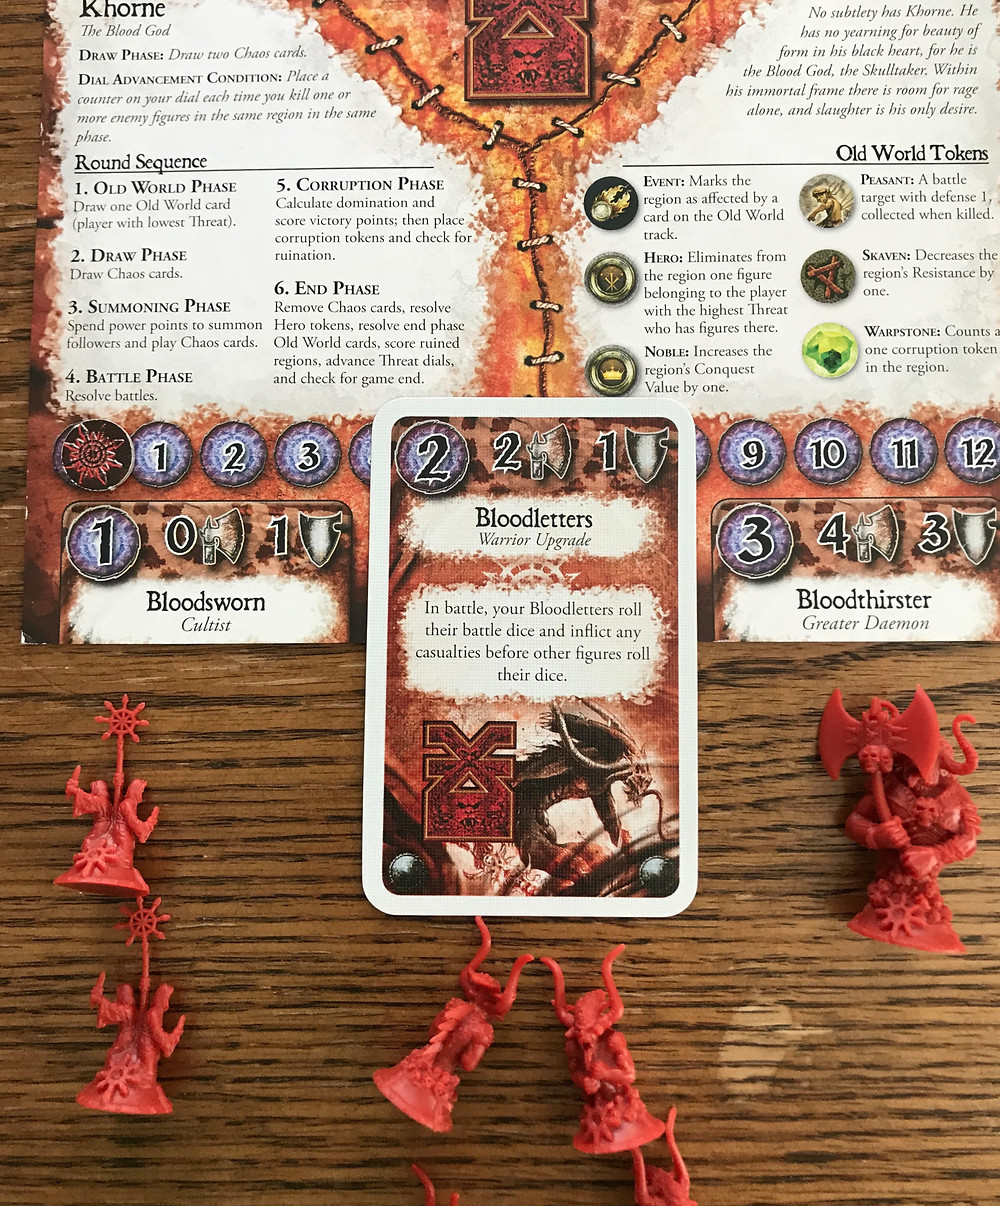 The other three players will really need to work together to keep Khorne from getting too many more dial advancements!